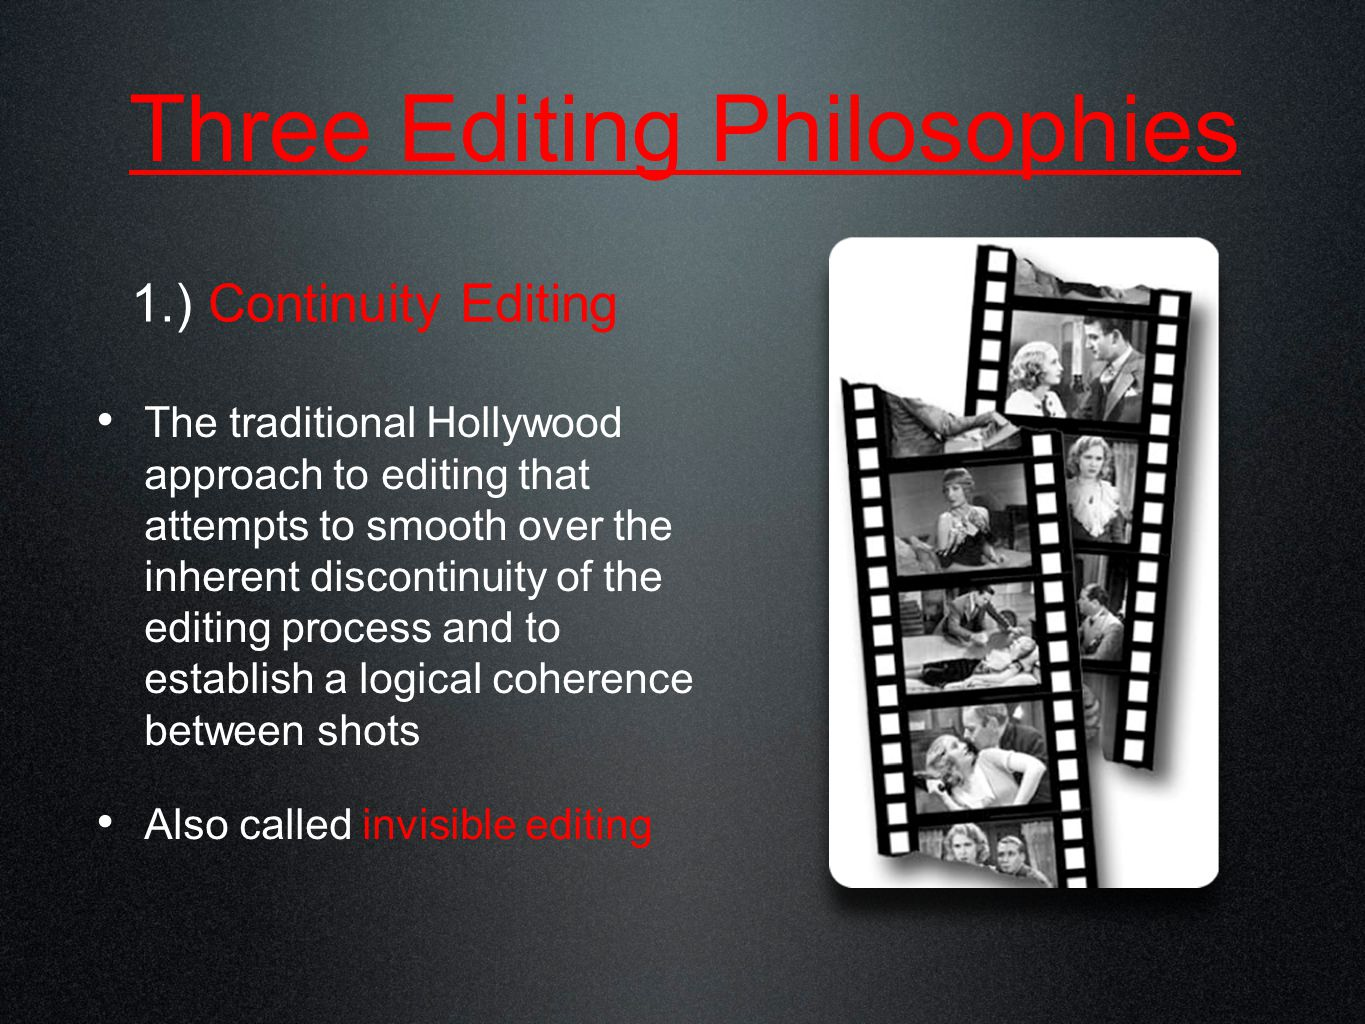 Three Editing Philosophies The traditional Hollywood approach to editing that attempts to smooth over the inherent discontinuity of the editing process and to establish a logical coherence between shots Also called invisible editing 1.) Continuity Editing